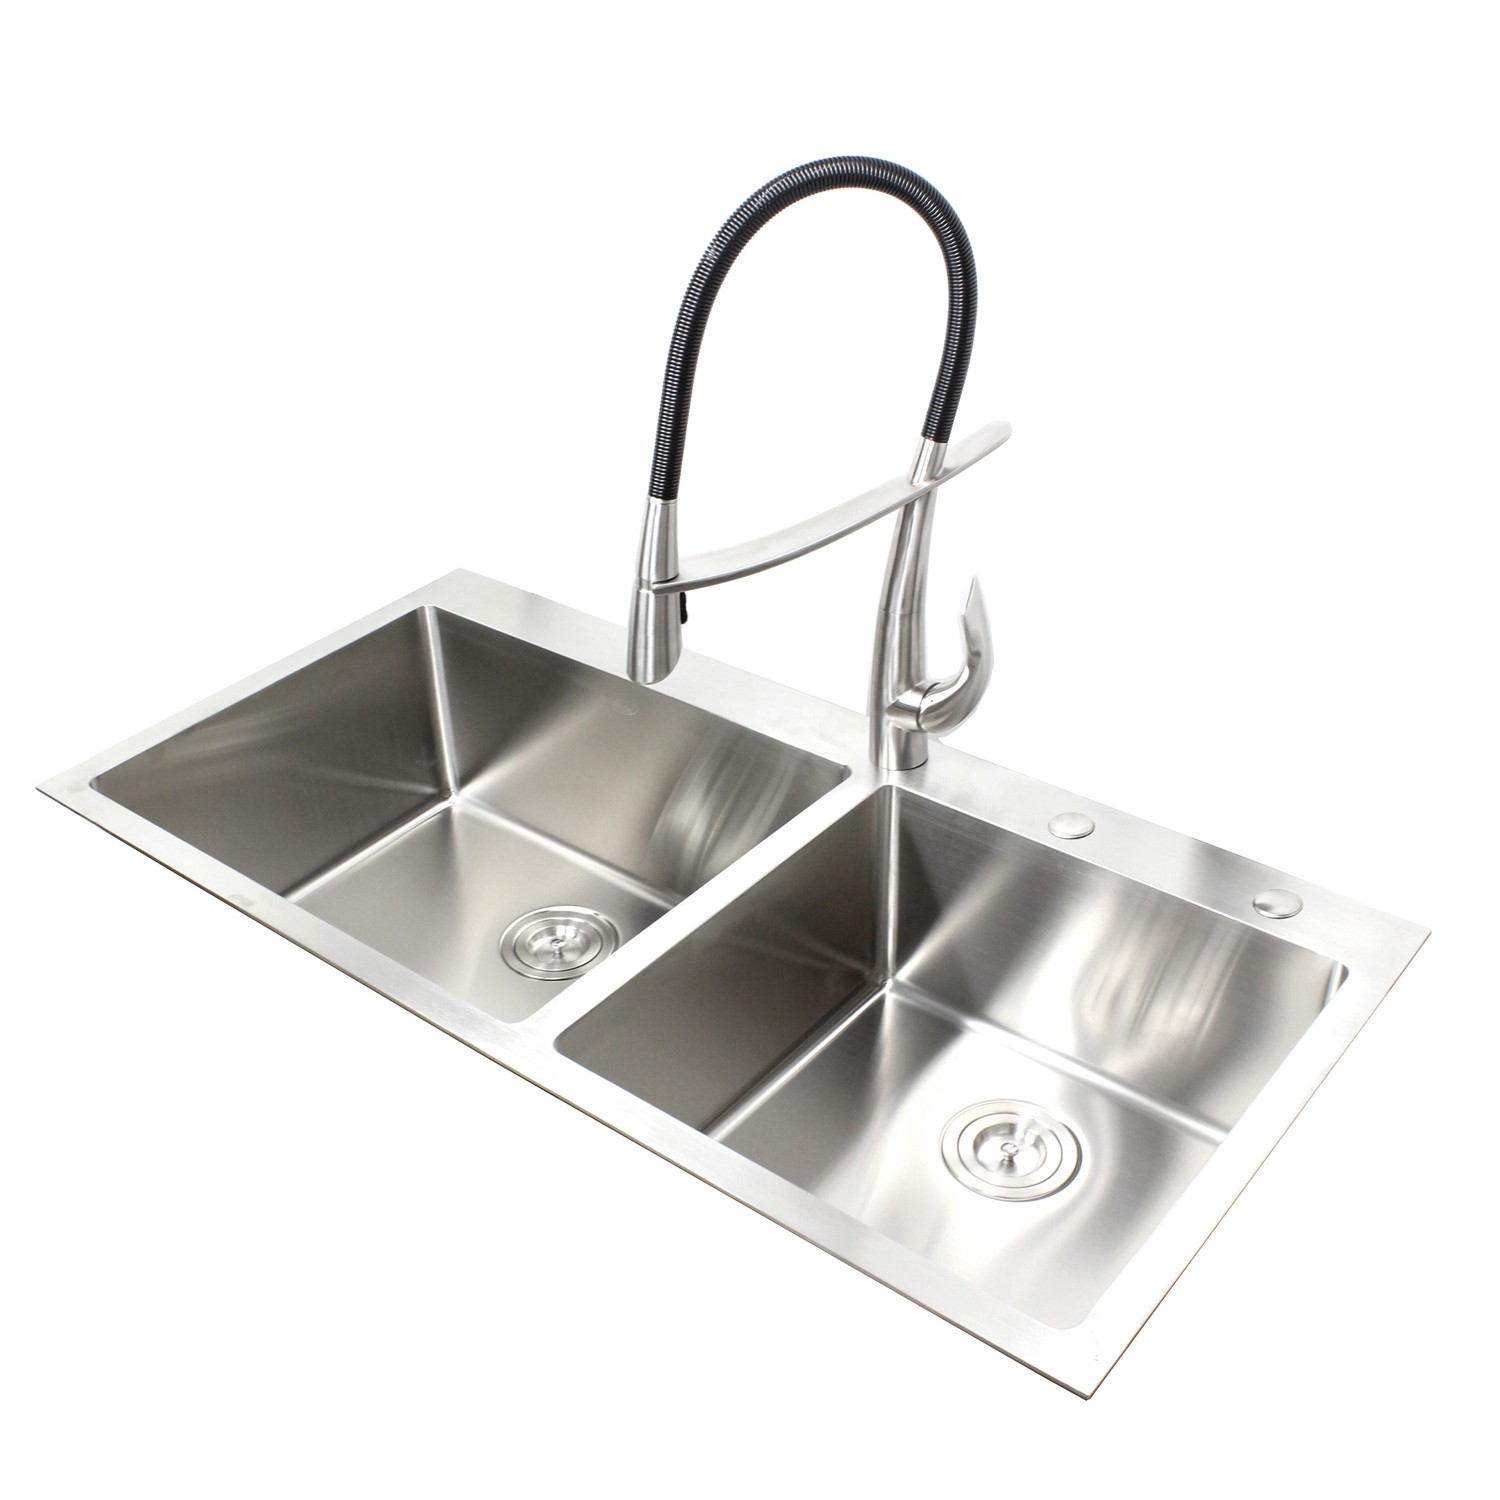 Cool 43 Inch Topmount Drop In Stainless Steel Double Bowl Kitchen Sink 15Mm Radius Design Complete Home Design Collection Lindsey Bellcom